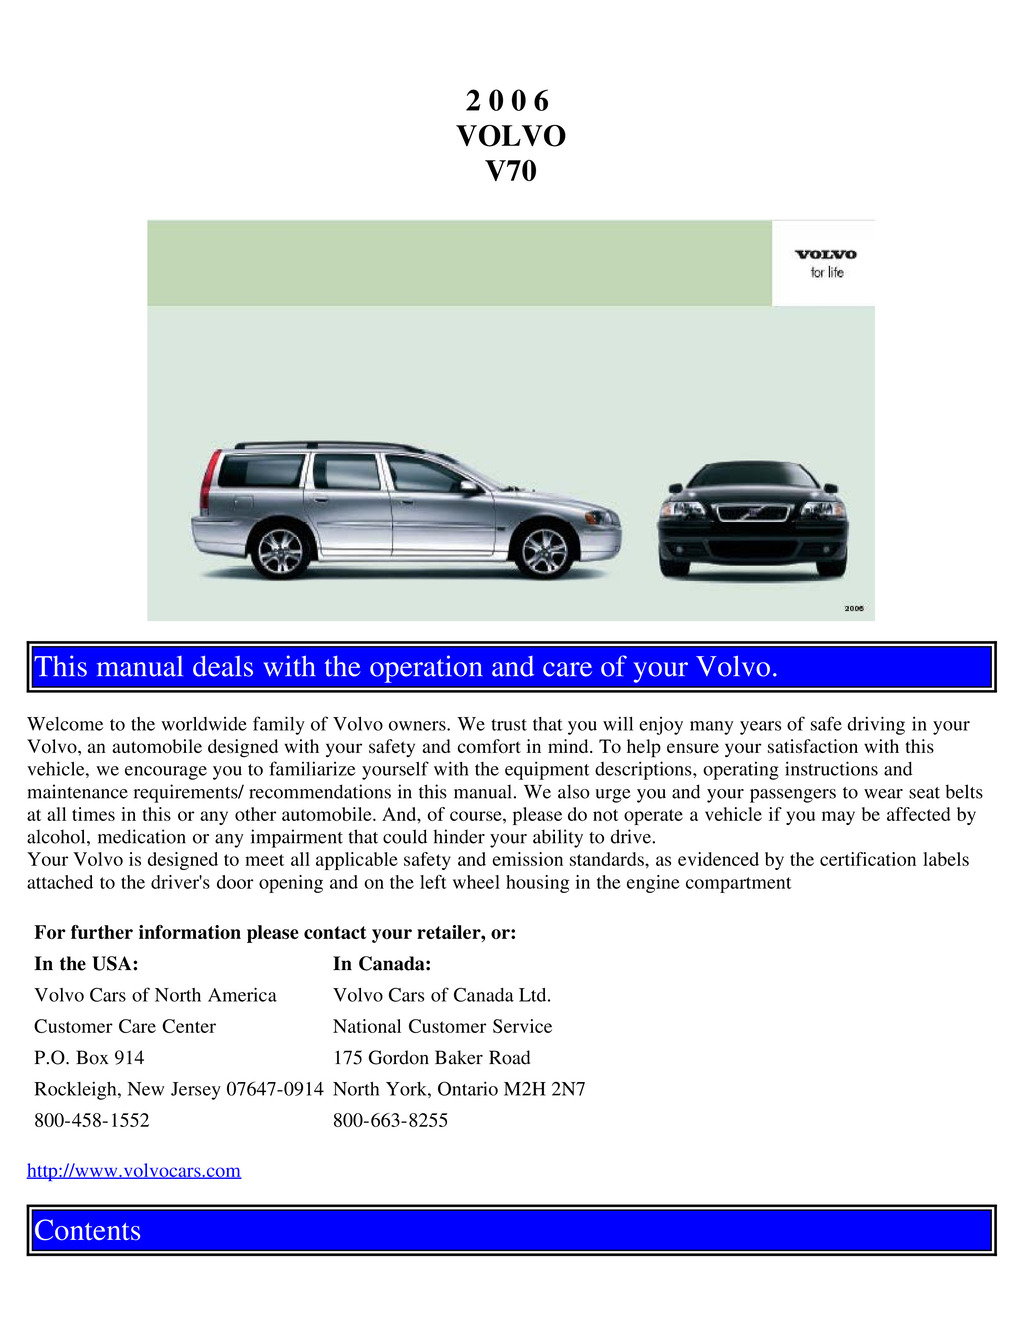 2006 Volvo V70 owners manual